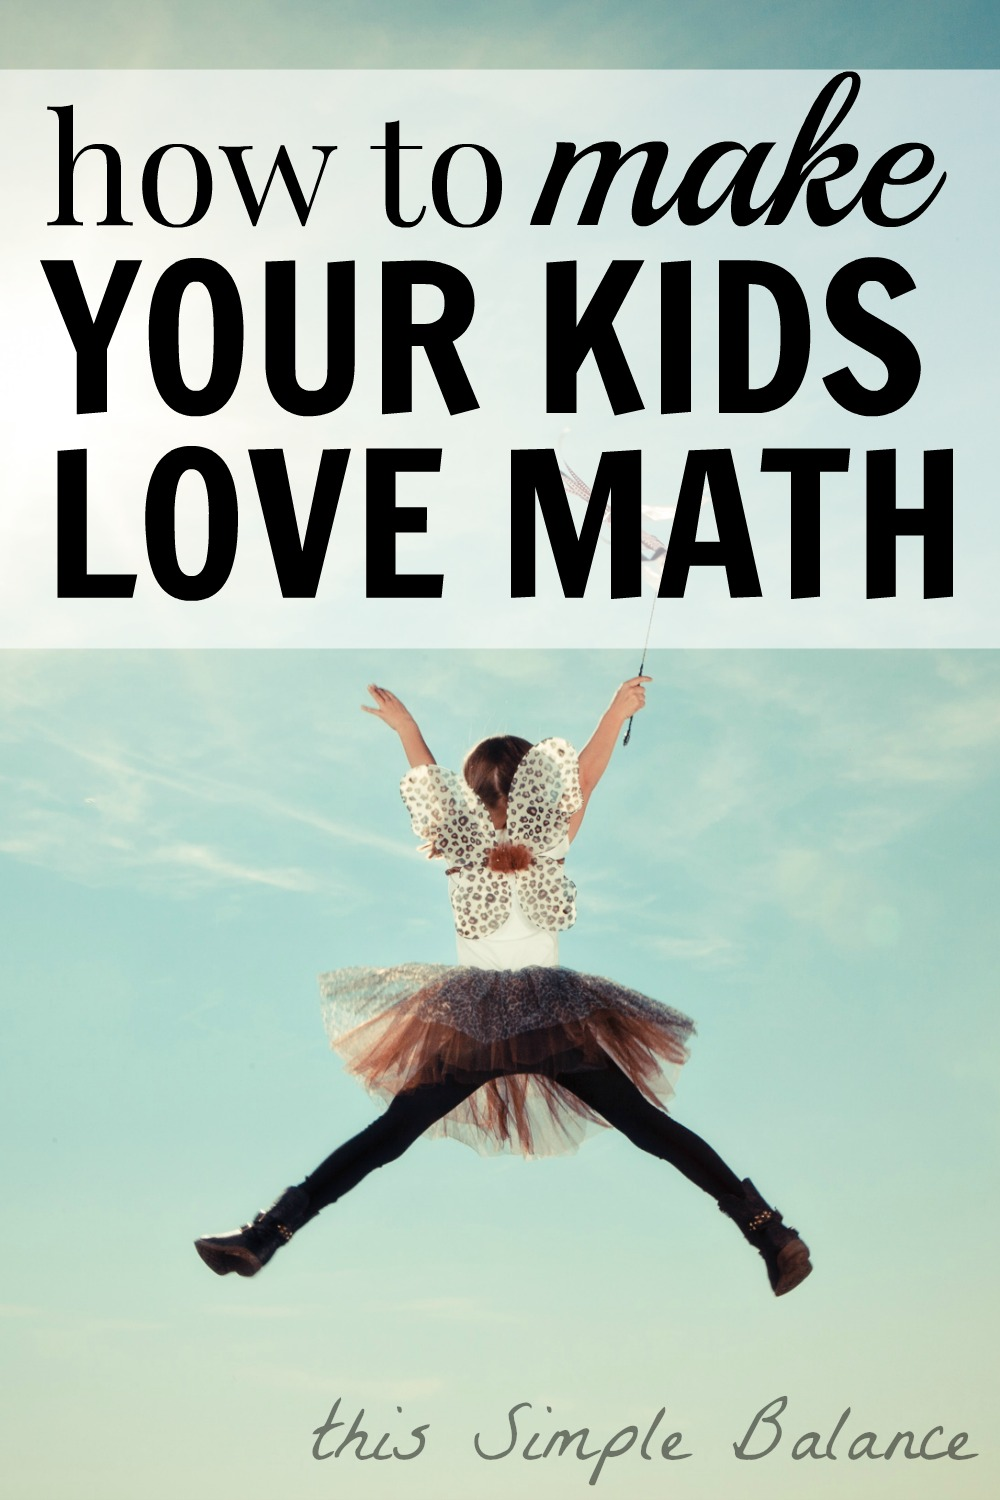 How to Teach Kids to Love Math